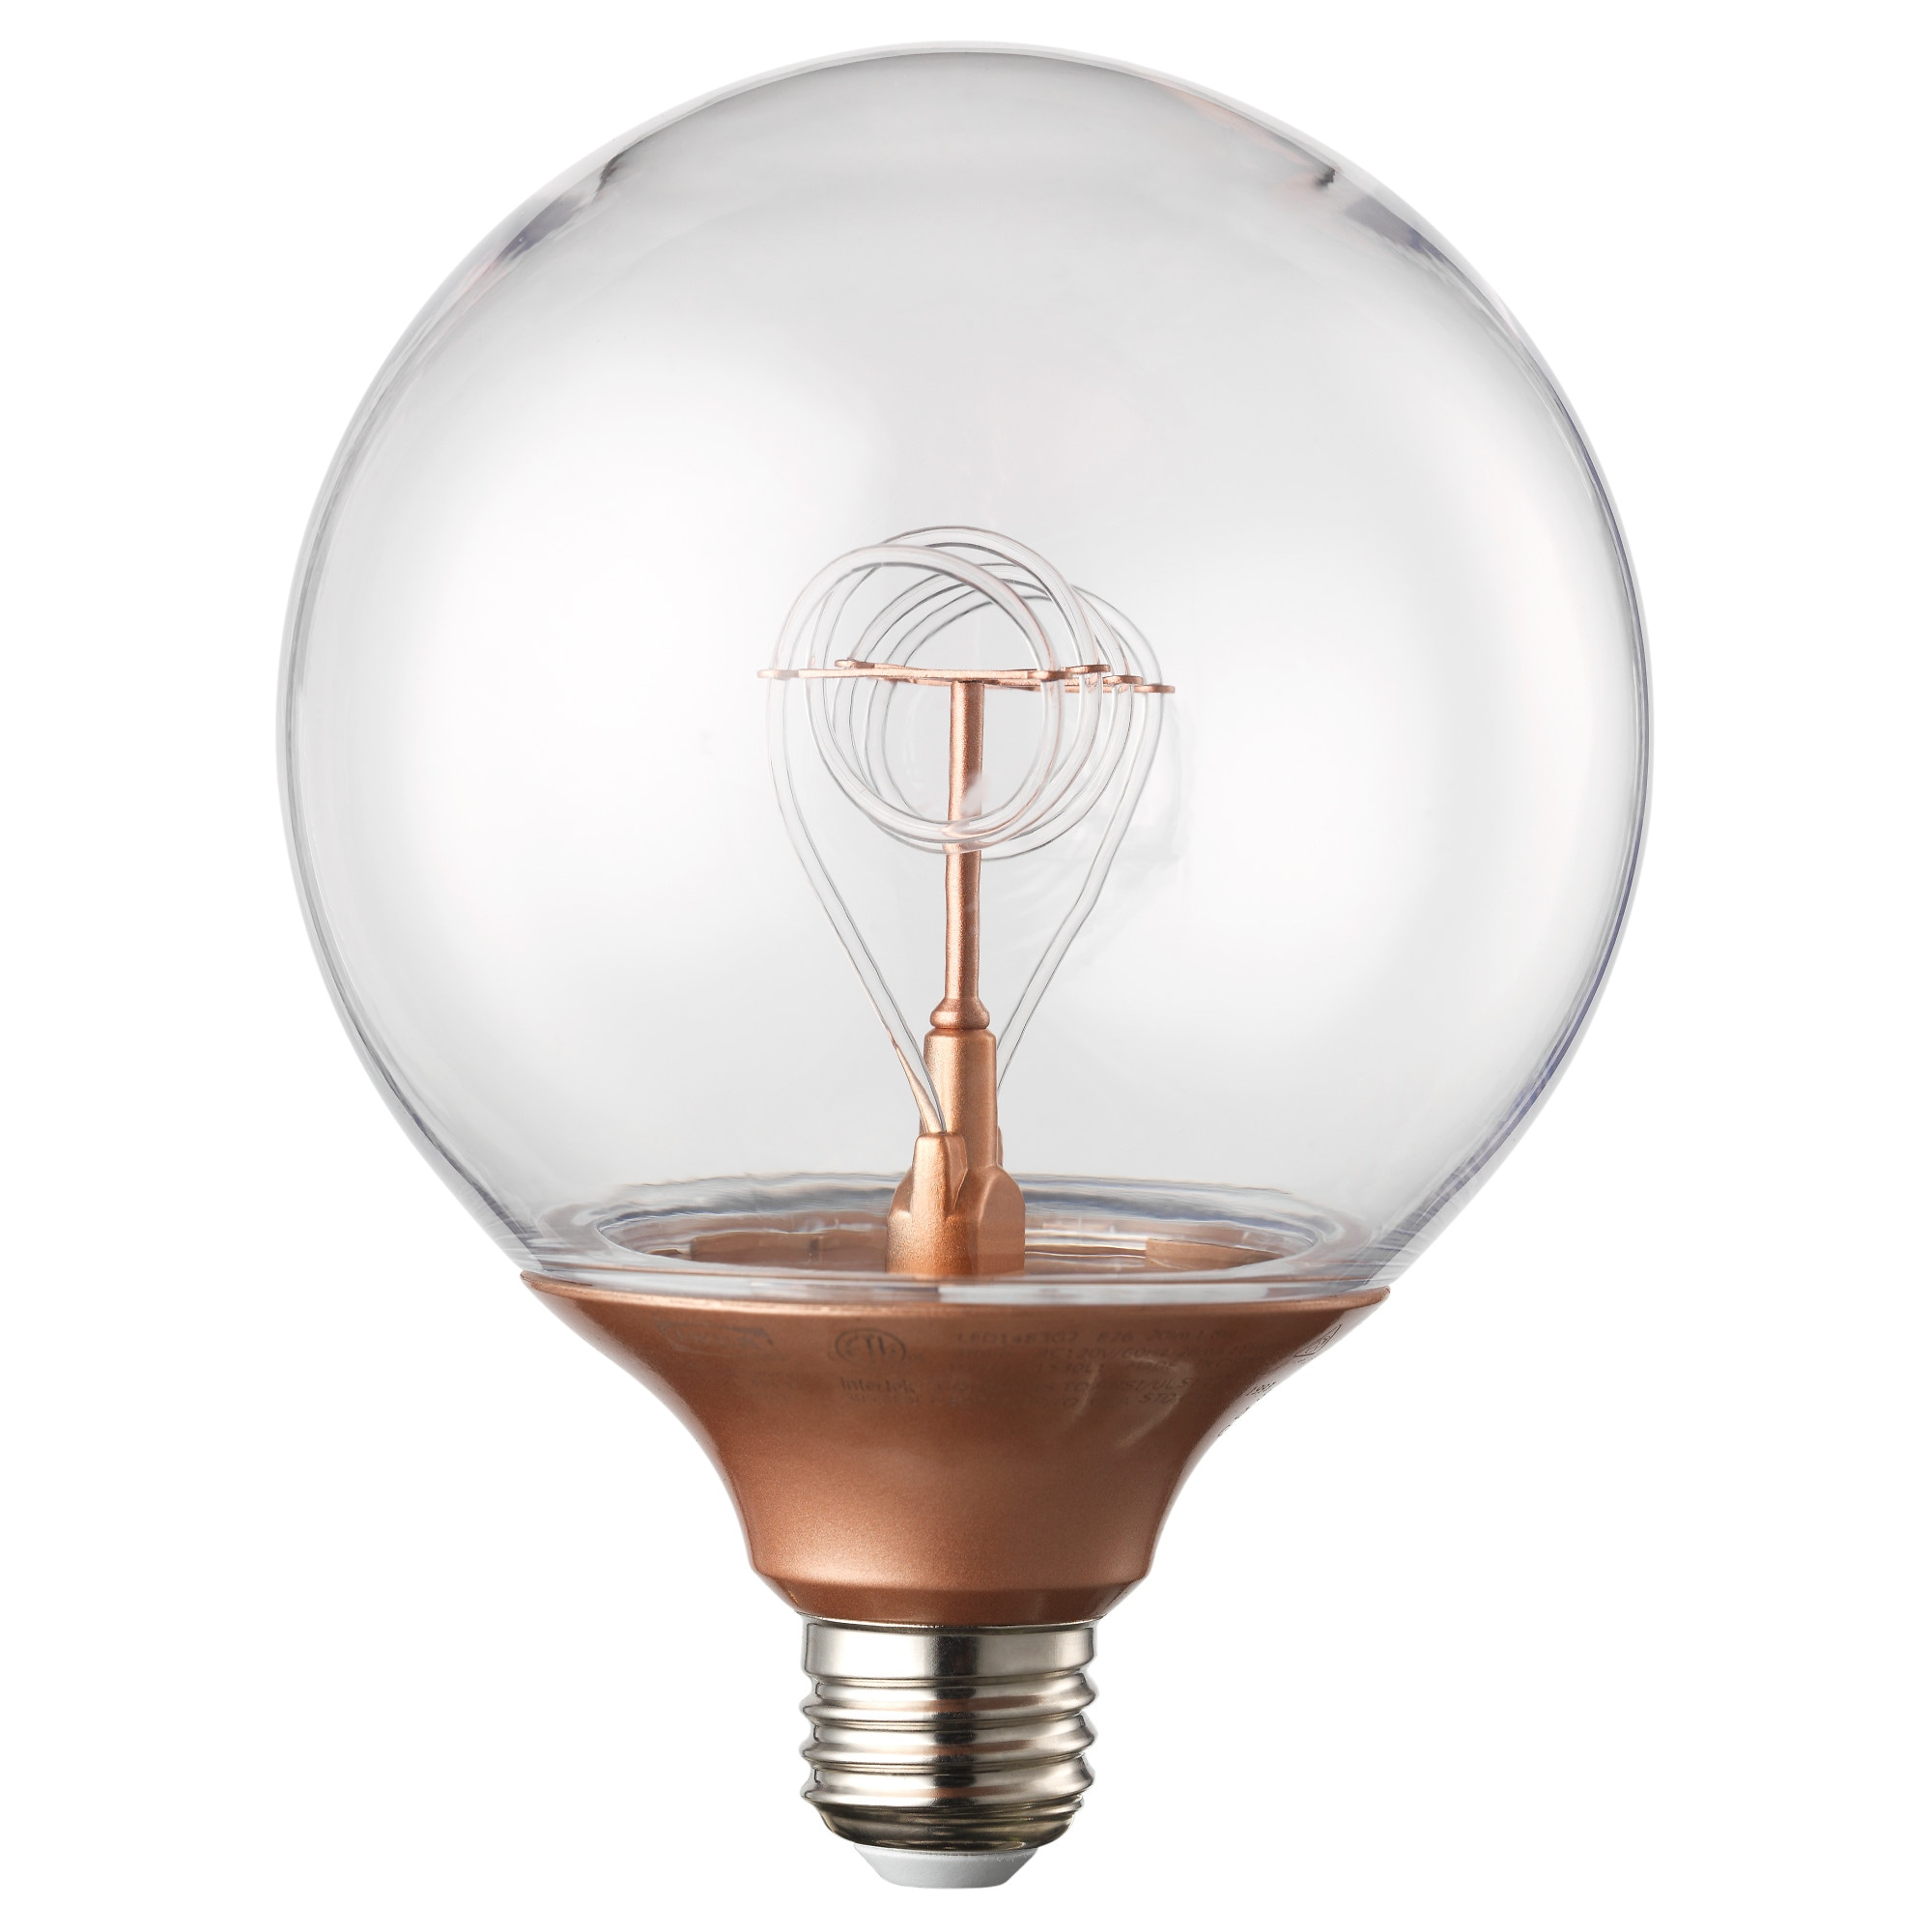 NITTIO LED bulb E26 20 lumen, globe copper color Luminous flux: 20 Lumen  Diameter